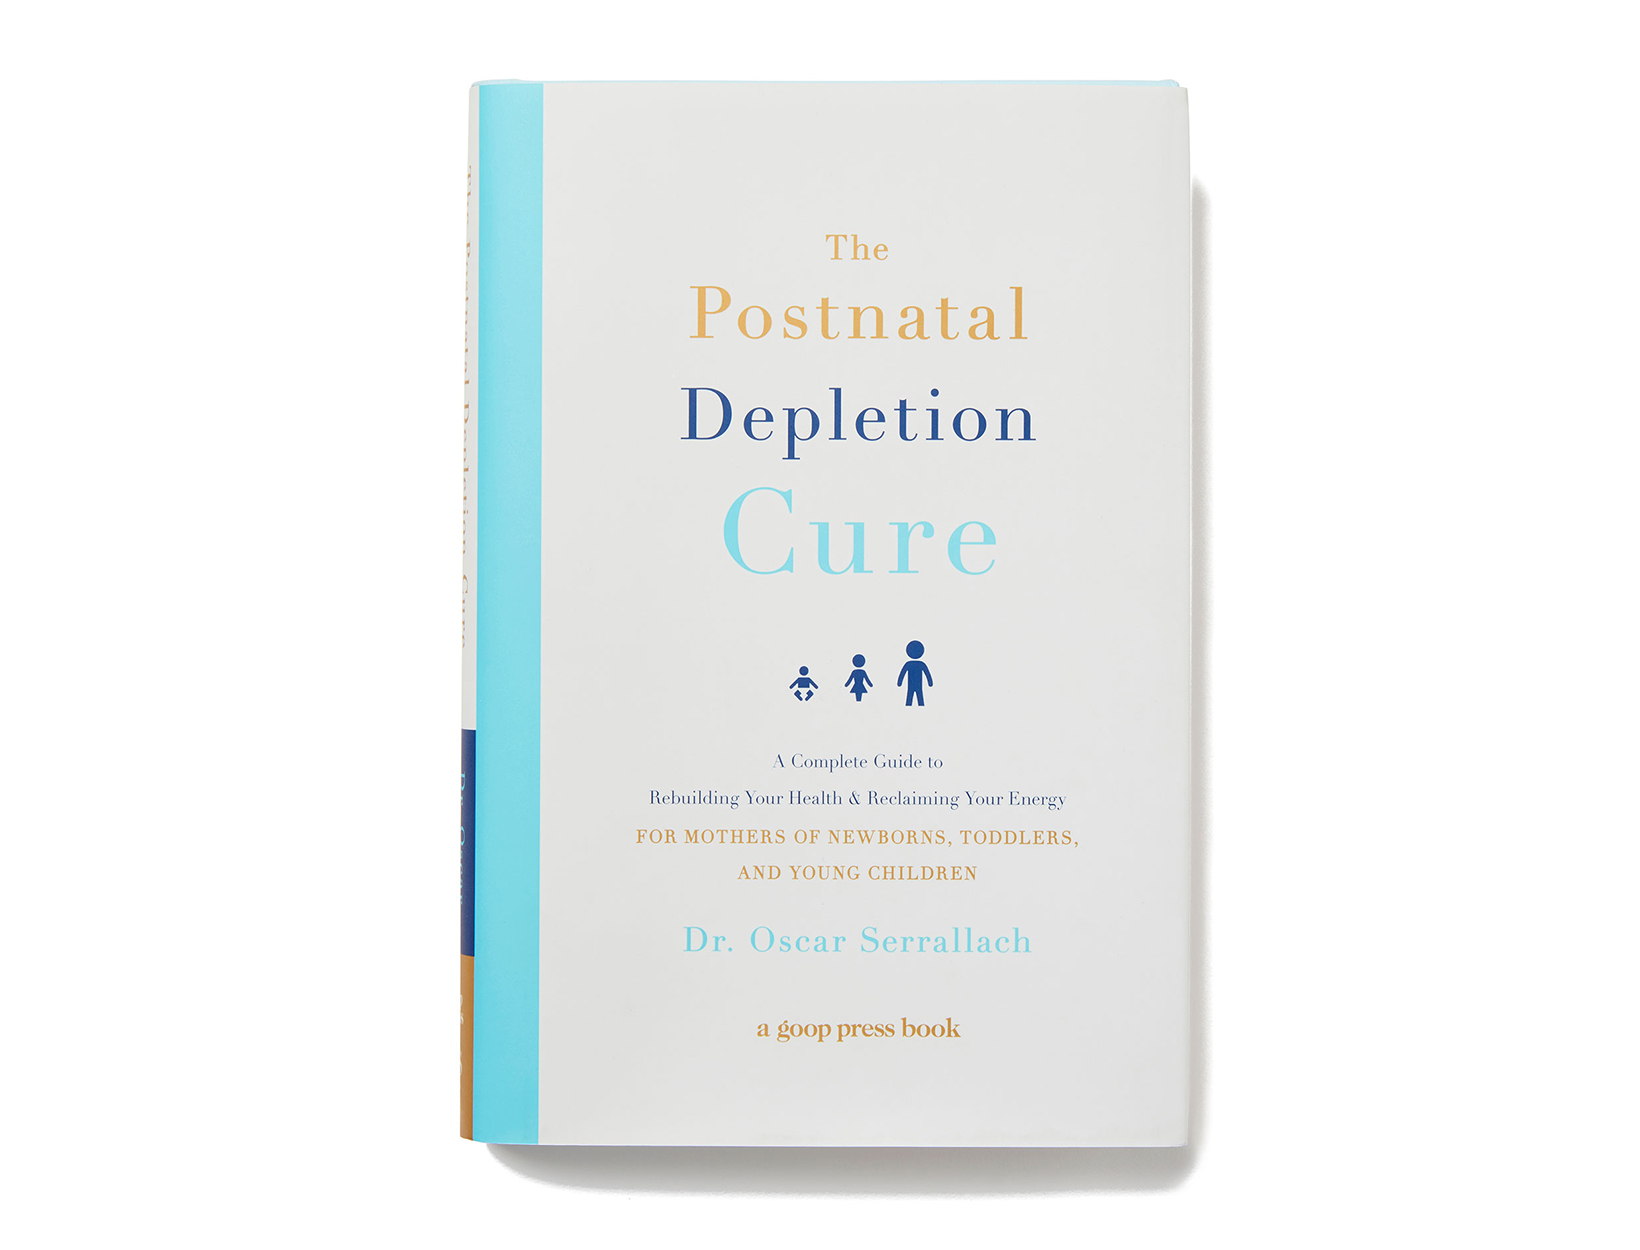 <em>The Postnatal Depletion Cure</em> by Dr. Oscar Serrallach